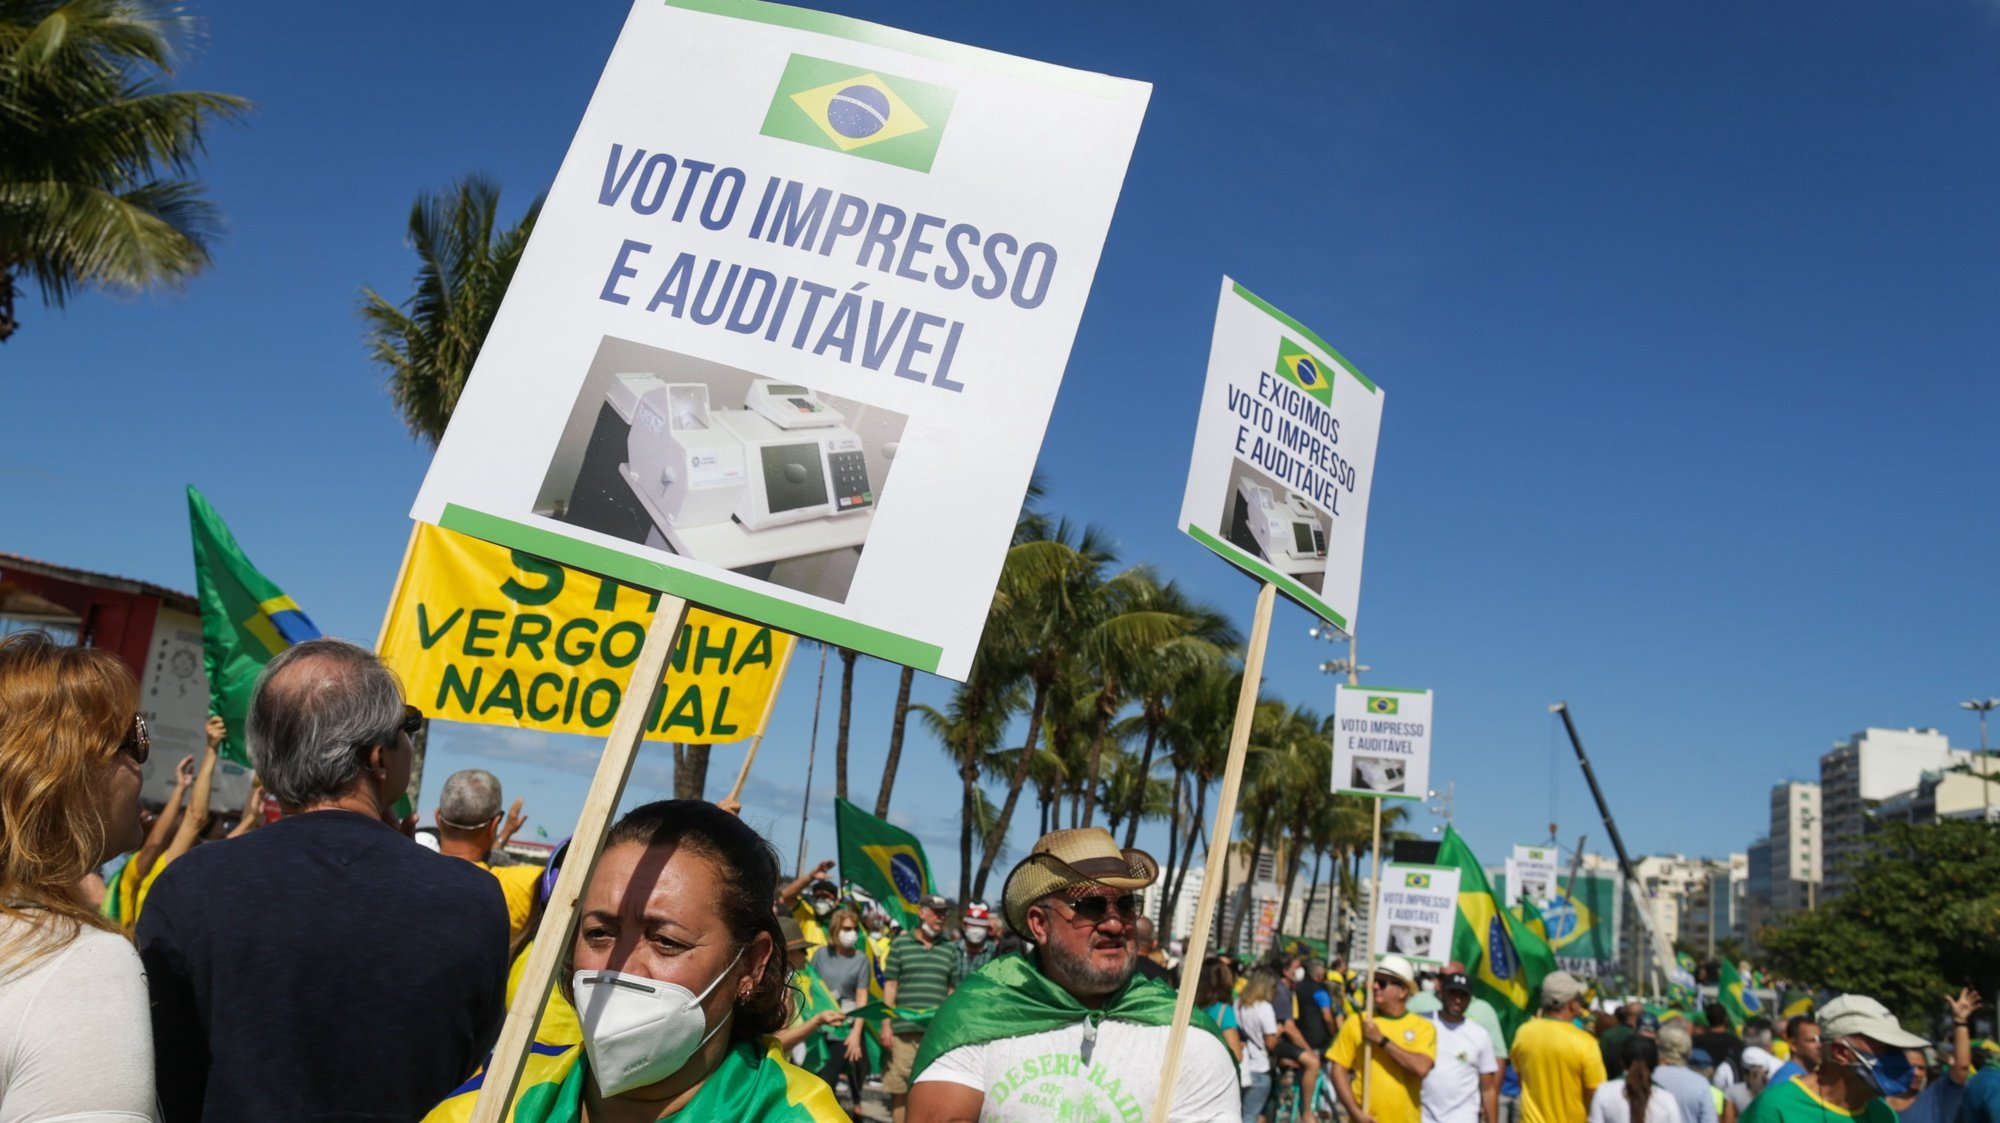 epa09386181 Supporters of the President of Brazil, Jair Bolsonaro, participate in a massive mobilization in favor of the printed vote and to demonstrate their support for the President, in Rio de Janeiro, Brazil, 01 August 2021. Bolsonaro's supporters took to the streets of several cities in the country on 01 August in support of his speech that the electronic voting machines are 'fraudulent.'  EPA/Andre Coelho